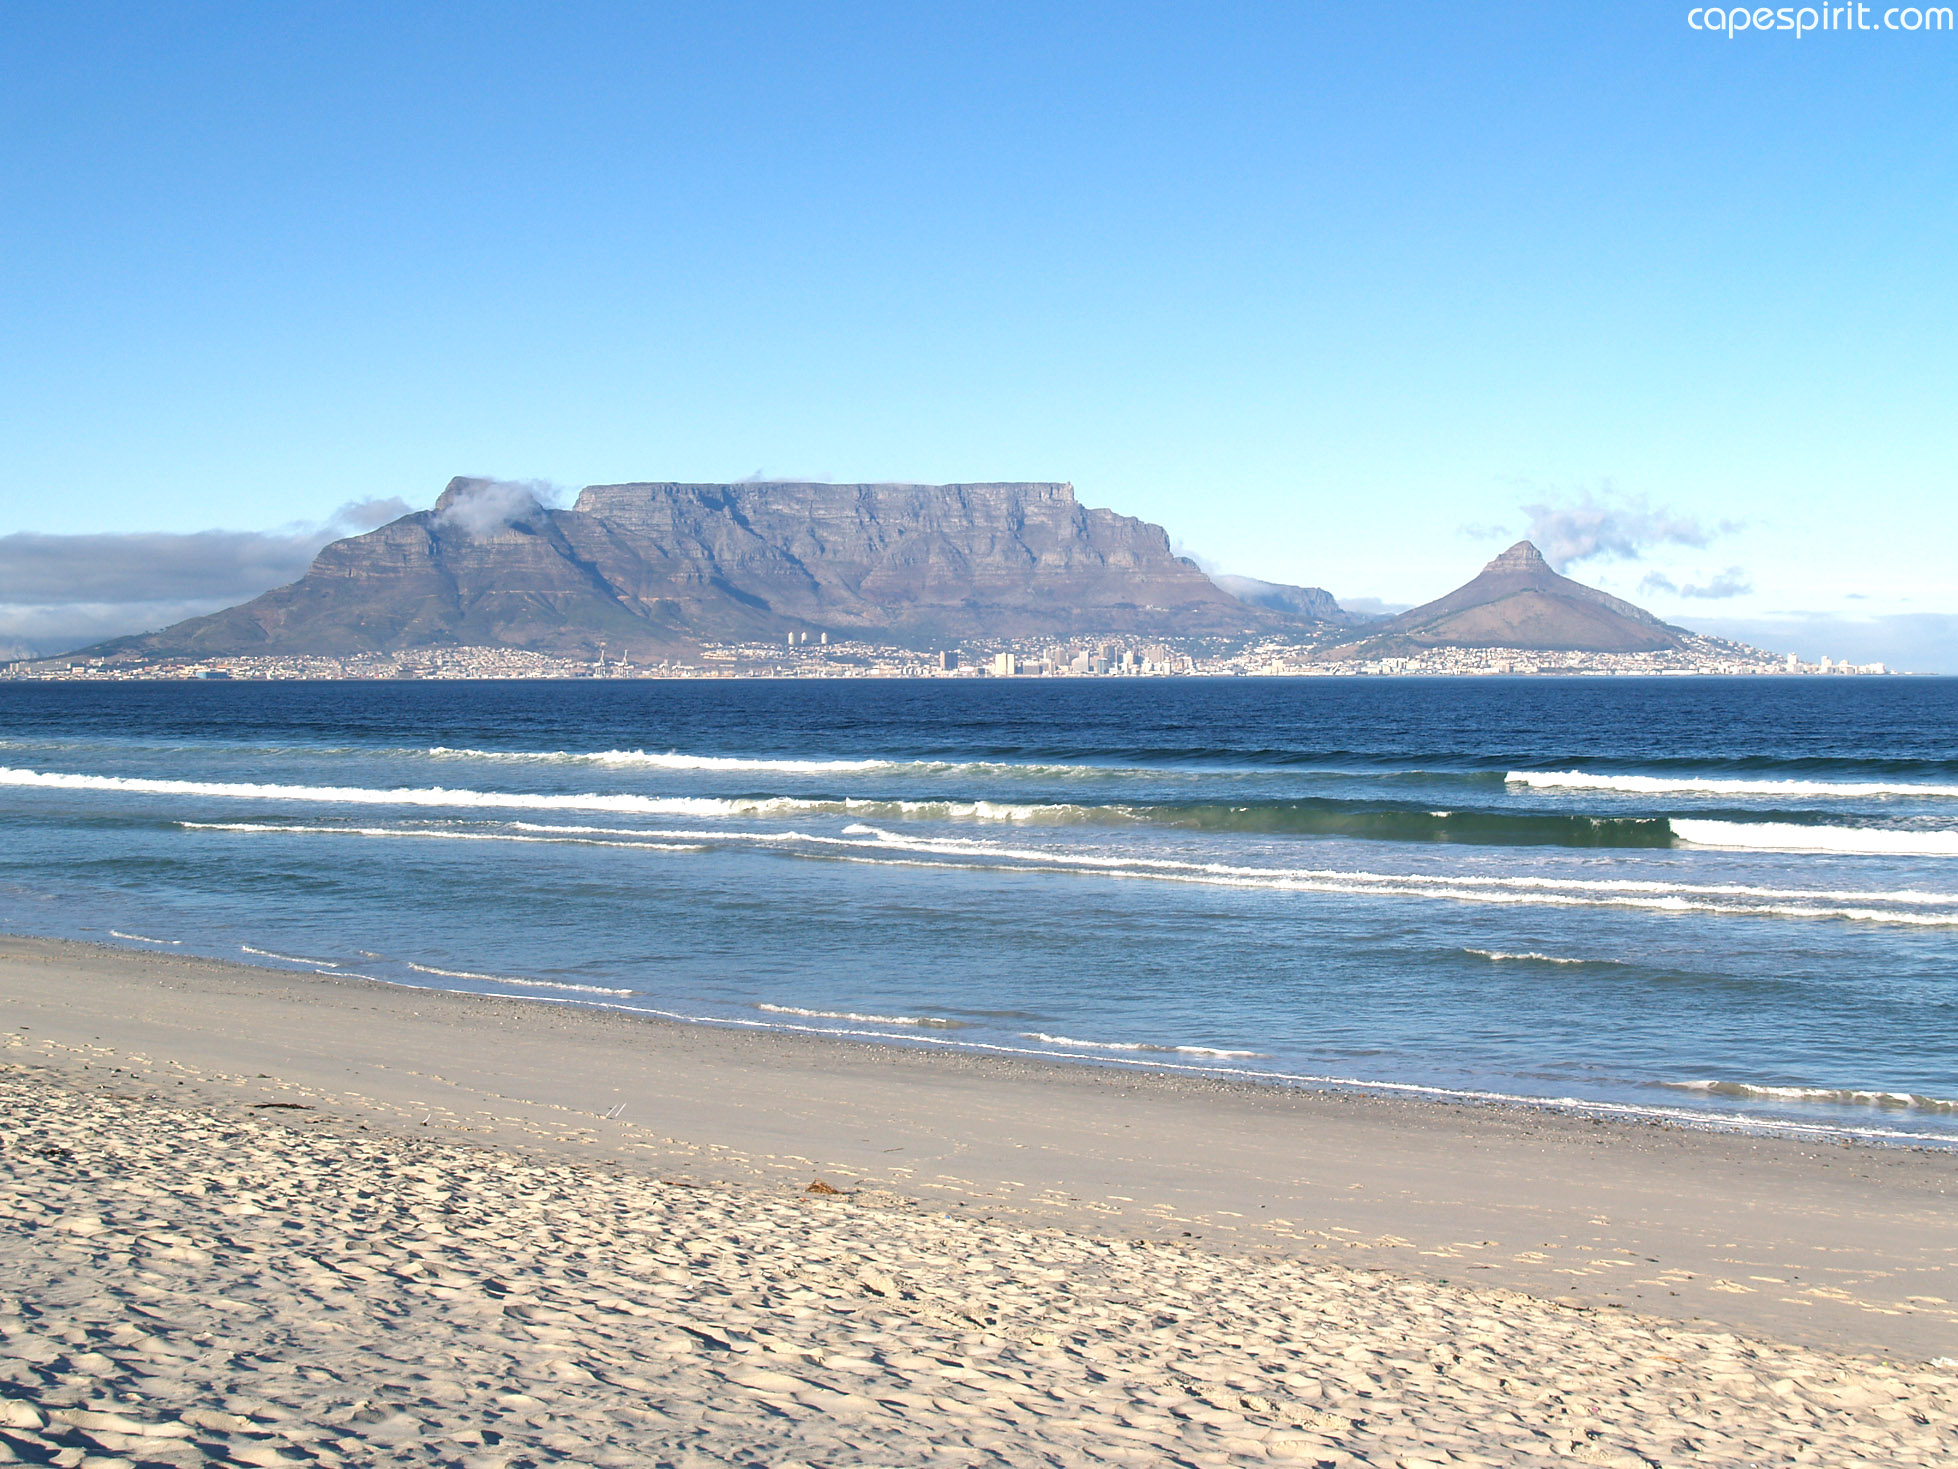 Wallpaper table rental wallpapersafari - Table mountain wallpaper ...